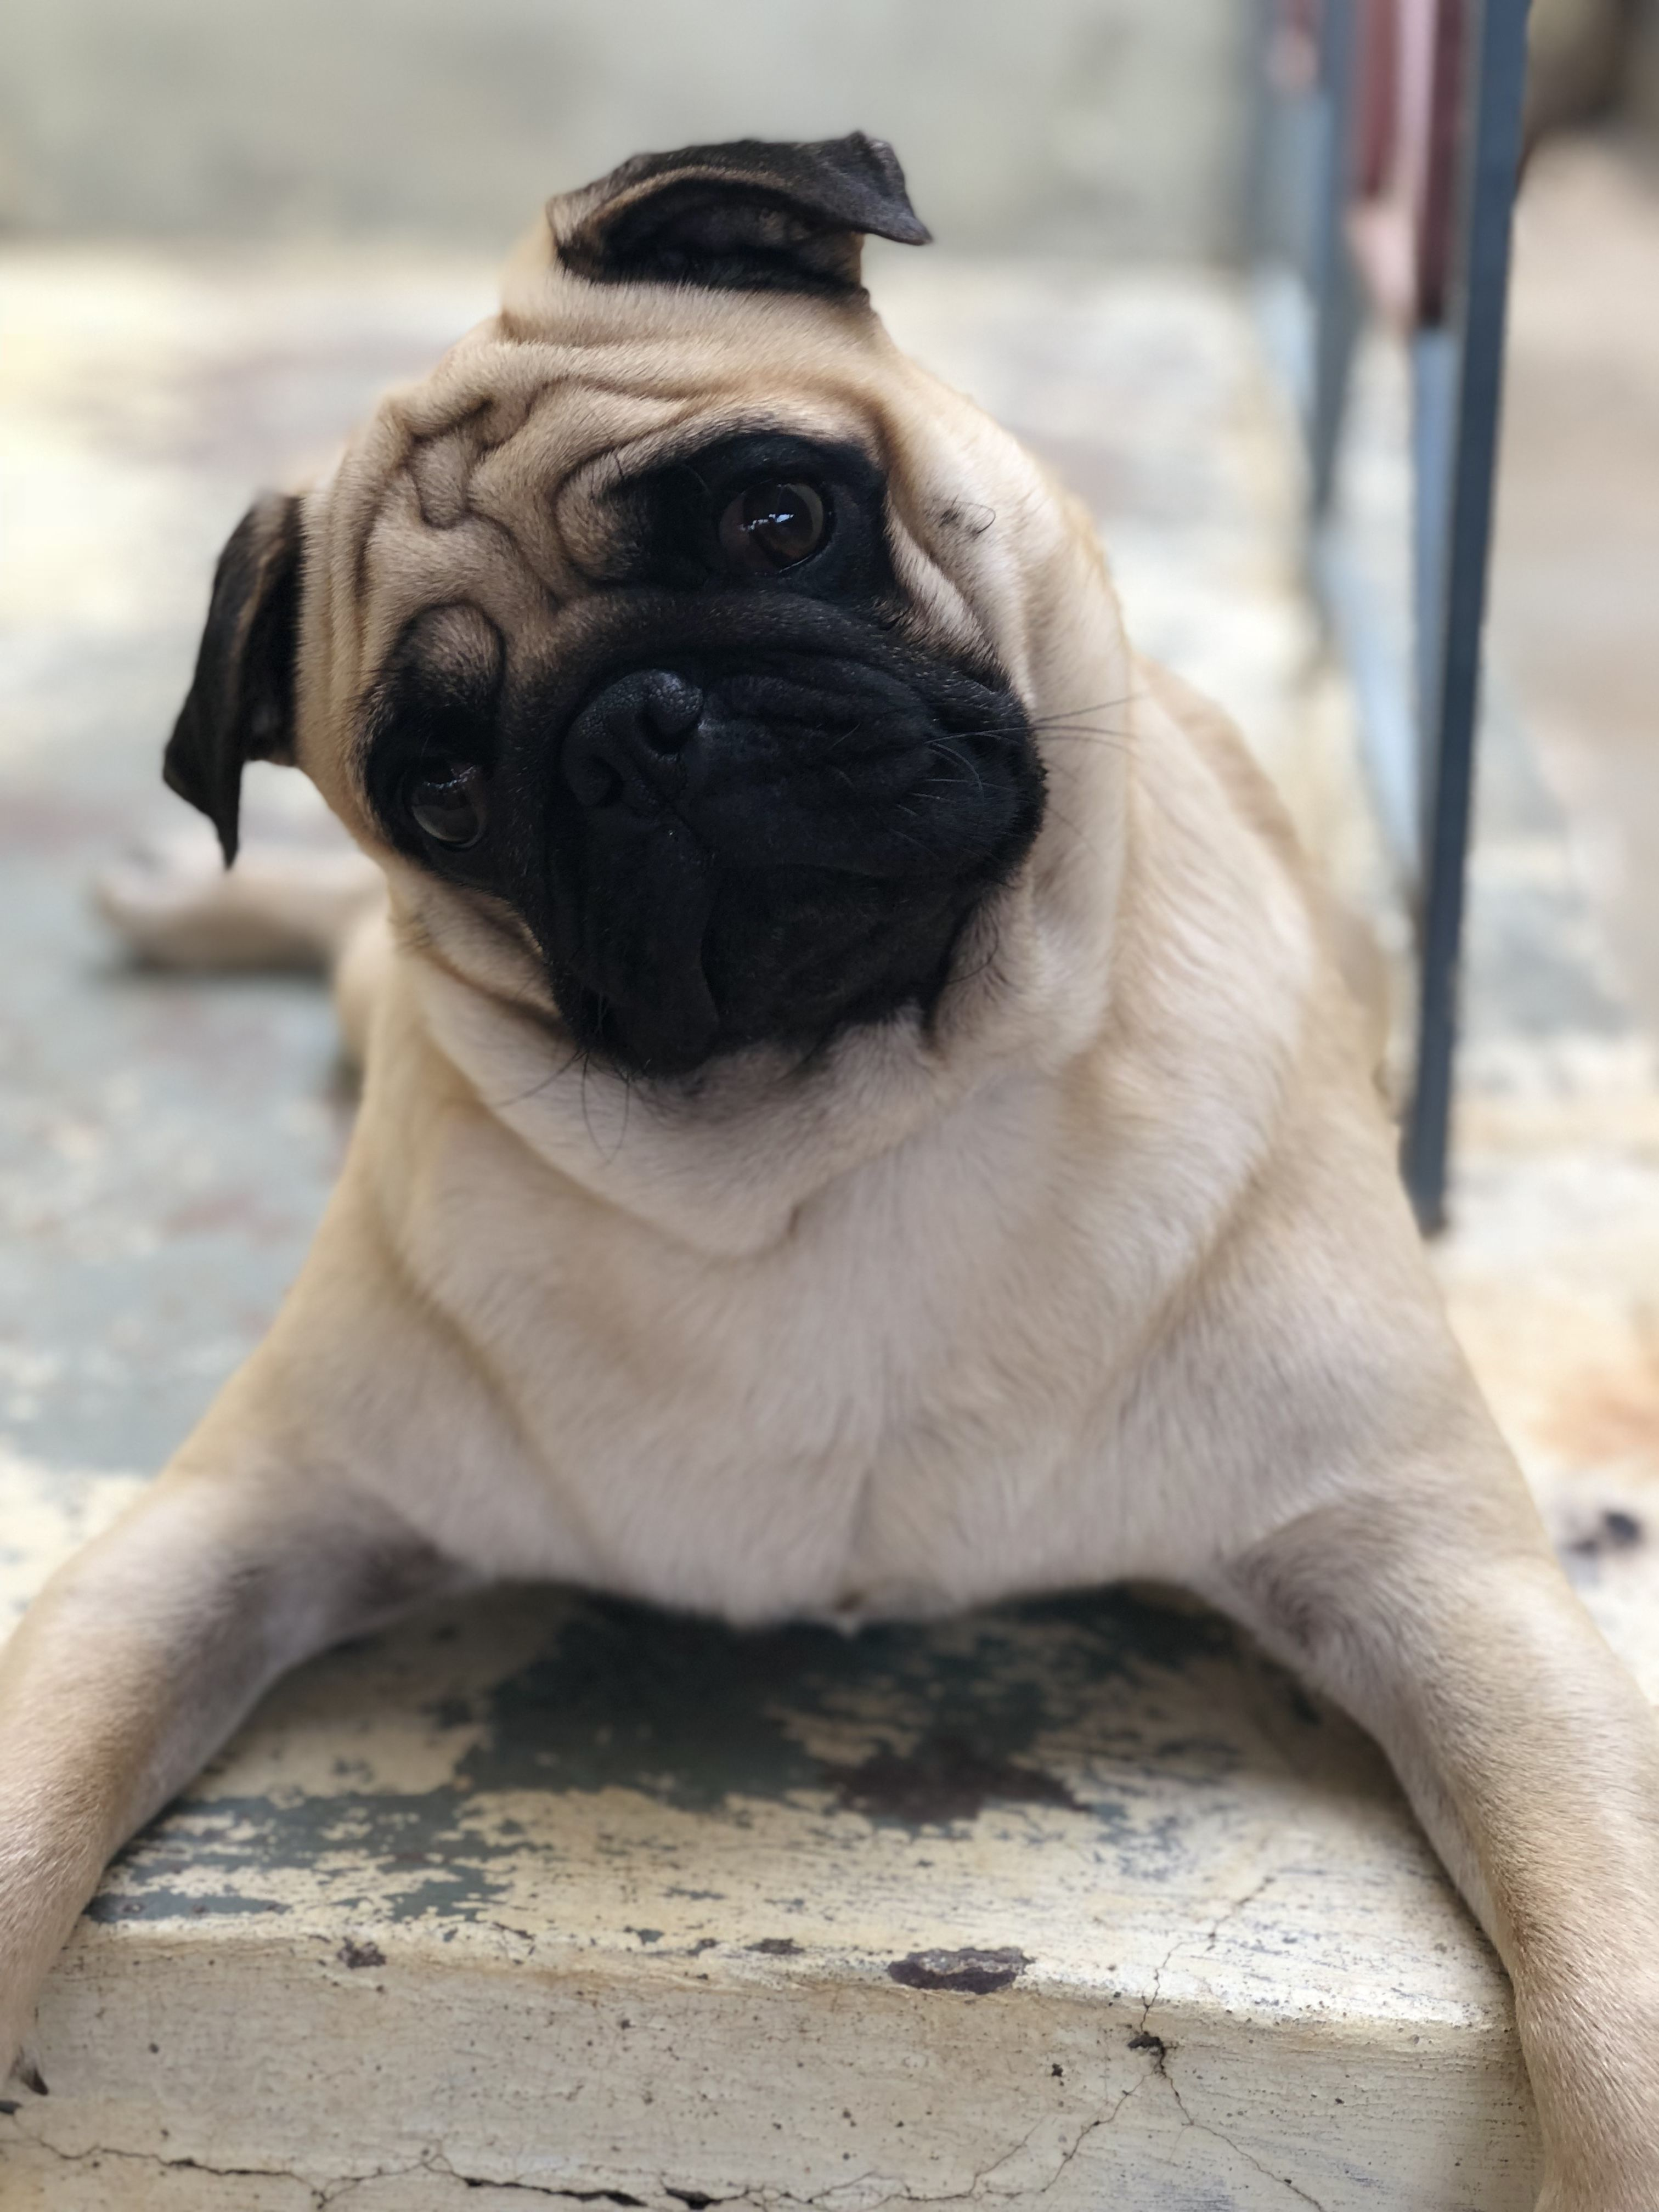 Pin By Cooljay On Pogo The Pug Cute Small Dogs Pugs Funny Pugs